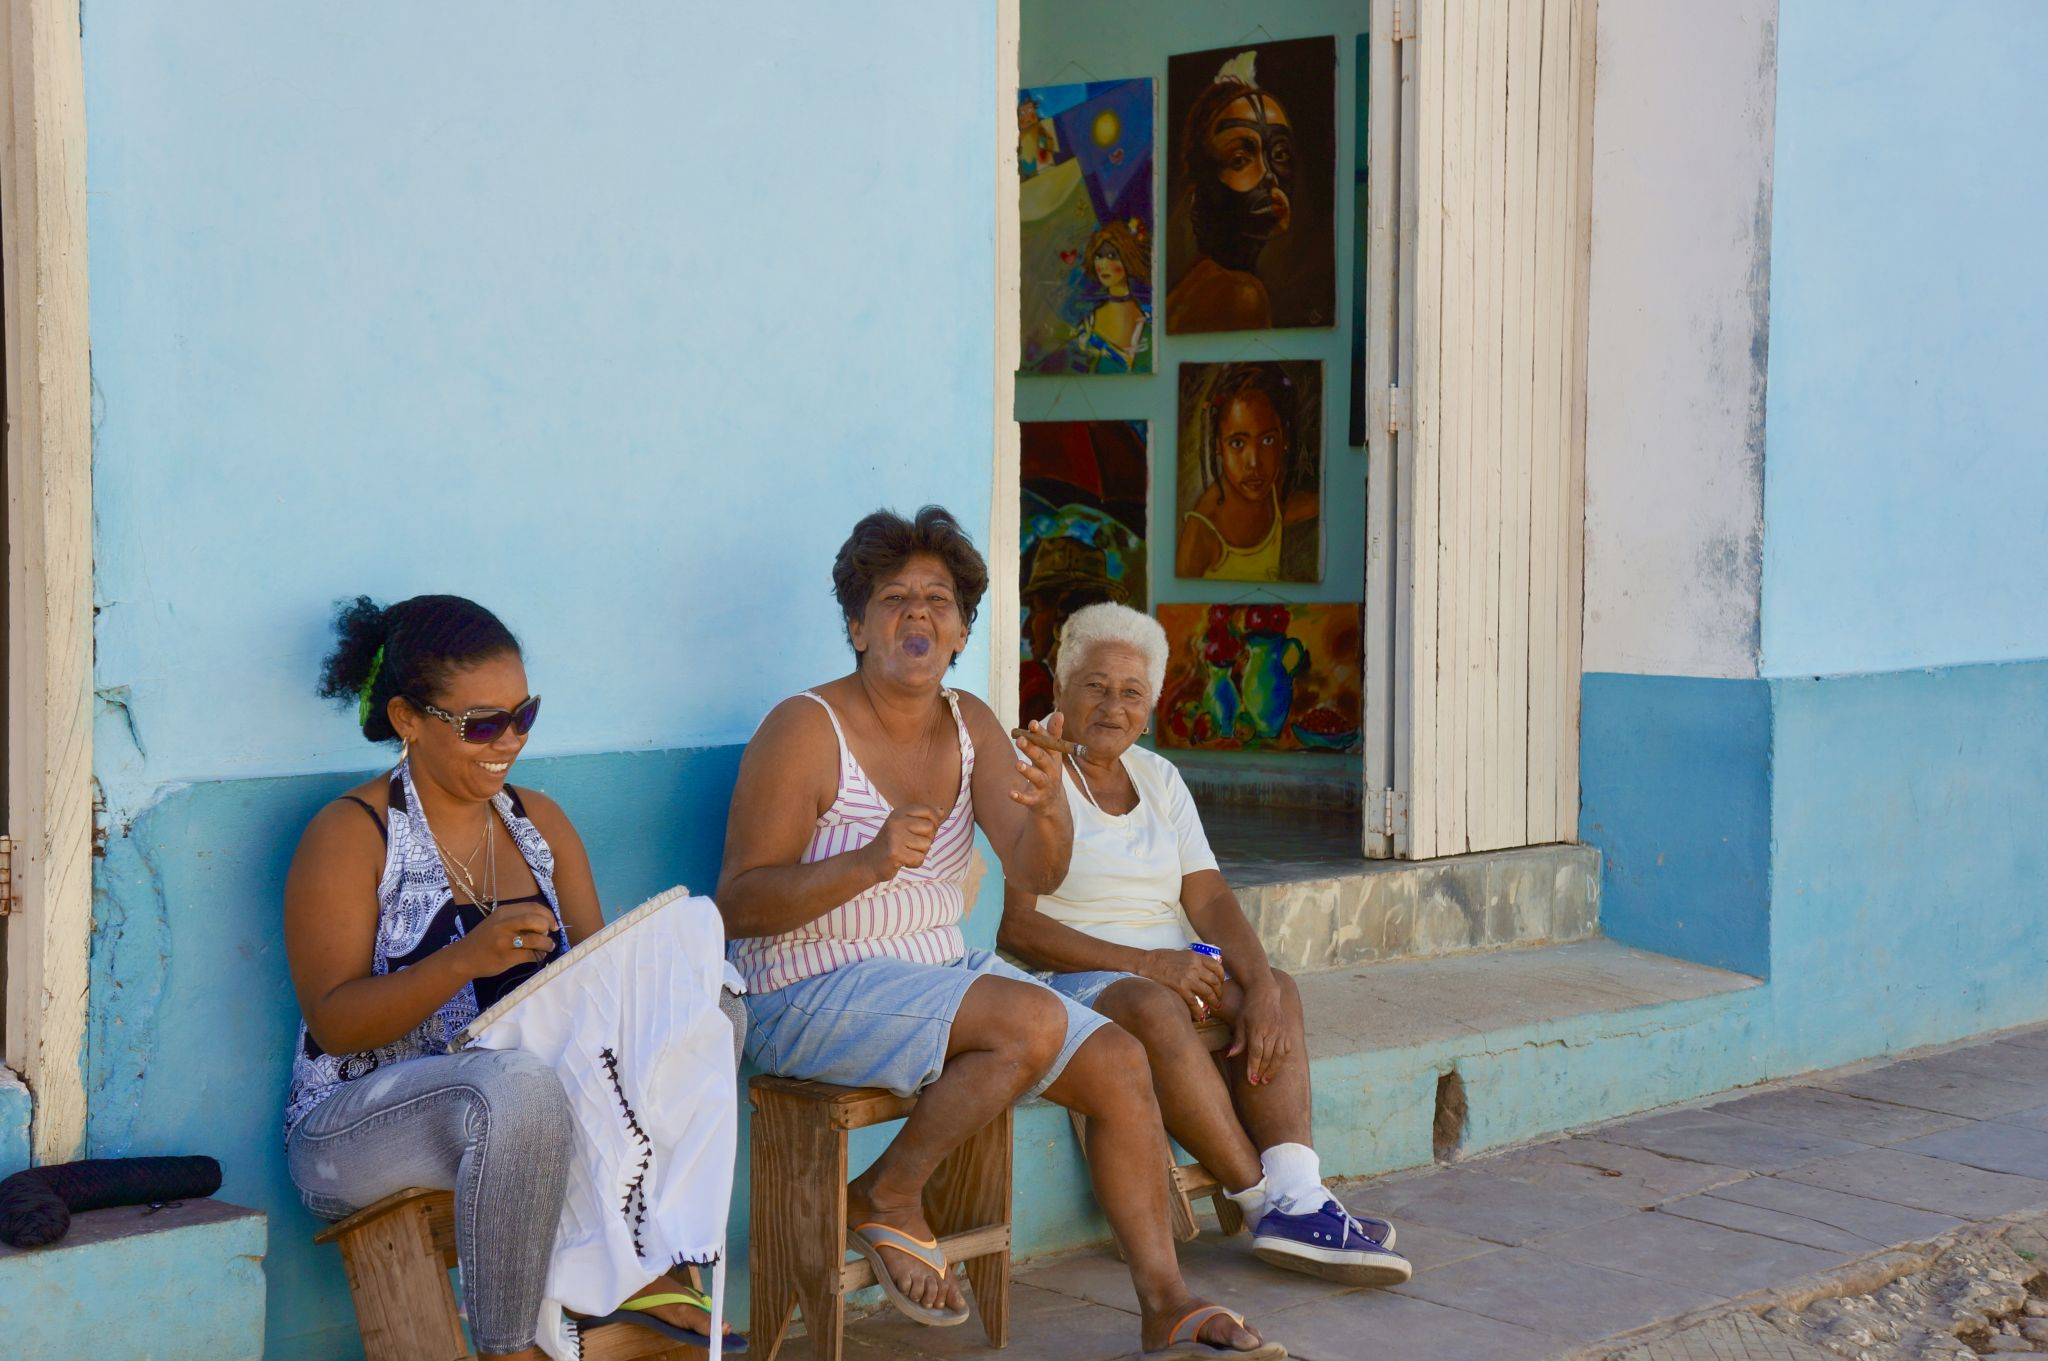 Cuban ladies smoking cigars in Colonial Trinidad.